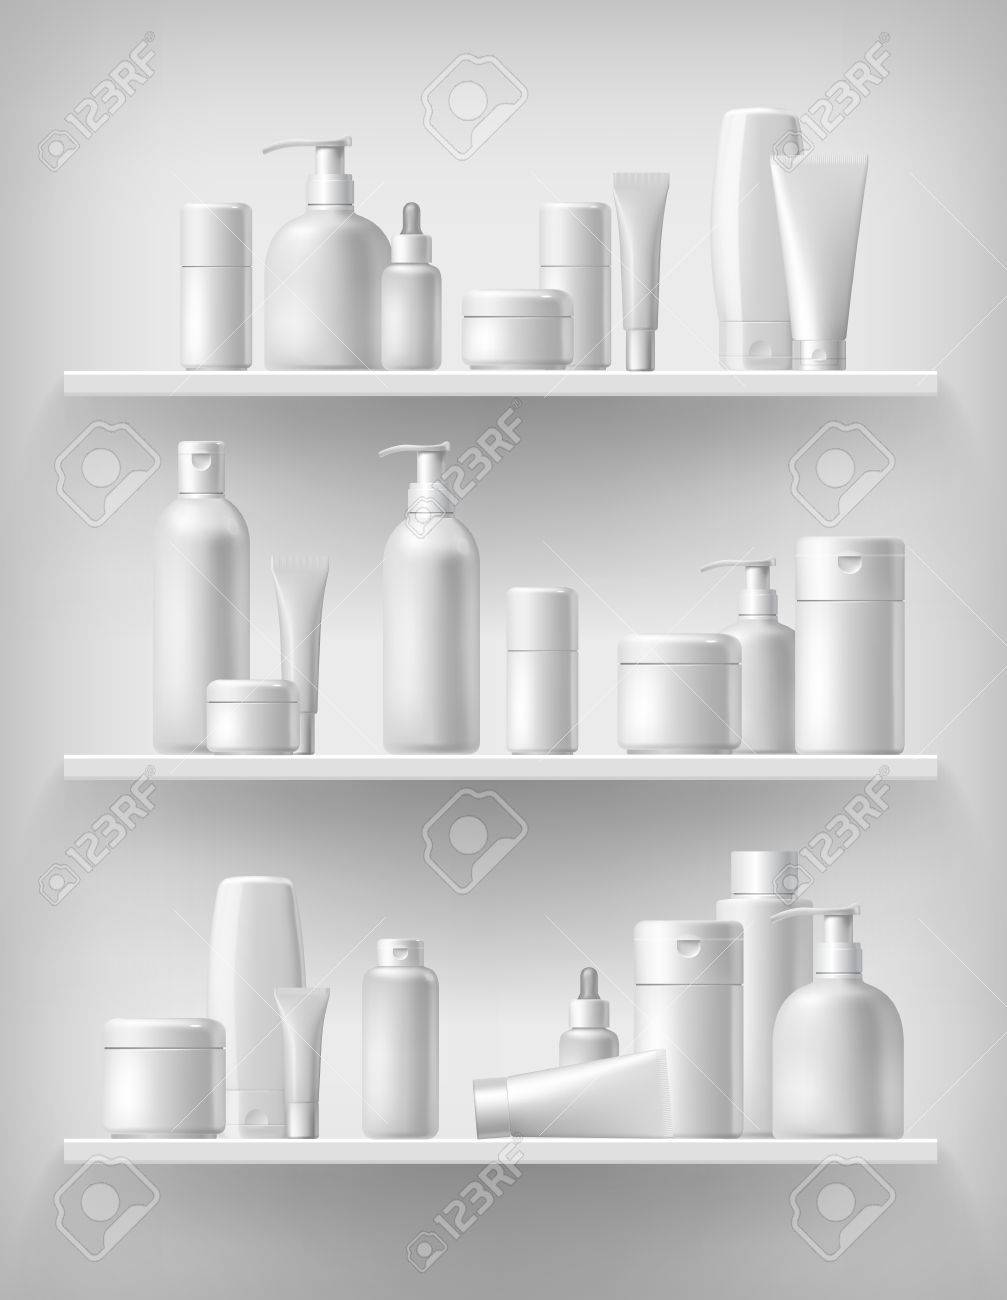 Cosmetic brand template. Vector packaging. Oil, lotion, shampoo. Realistic bottle mock up set. Isolated pack on the shelf. - 56560663